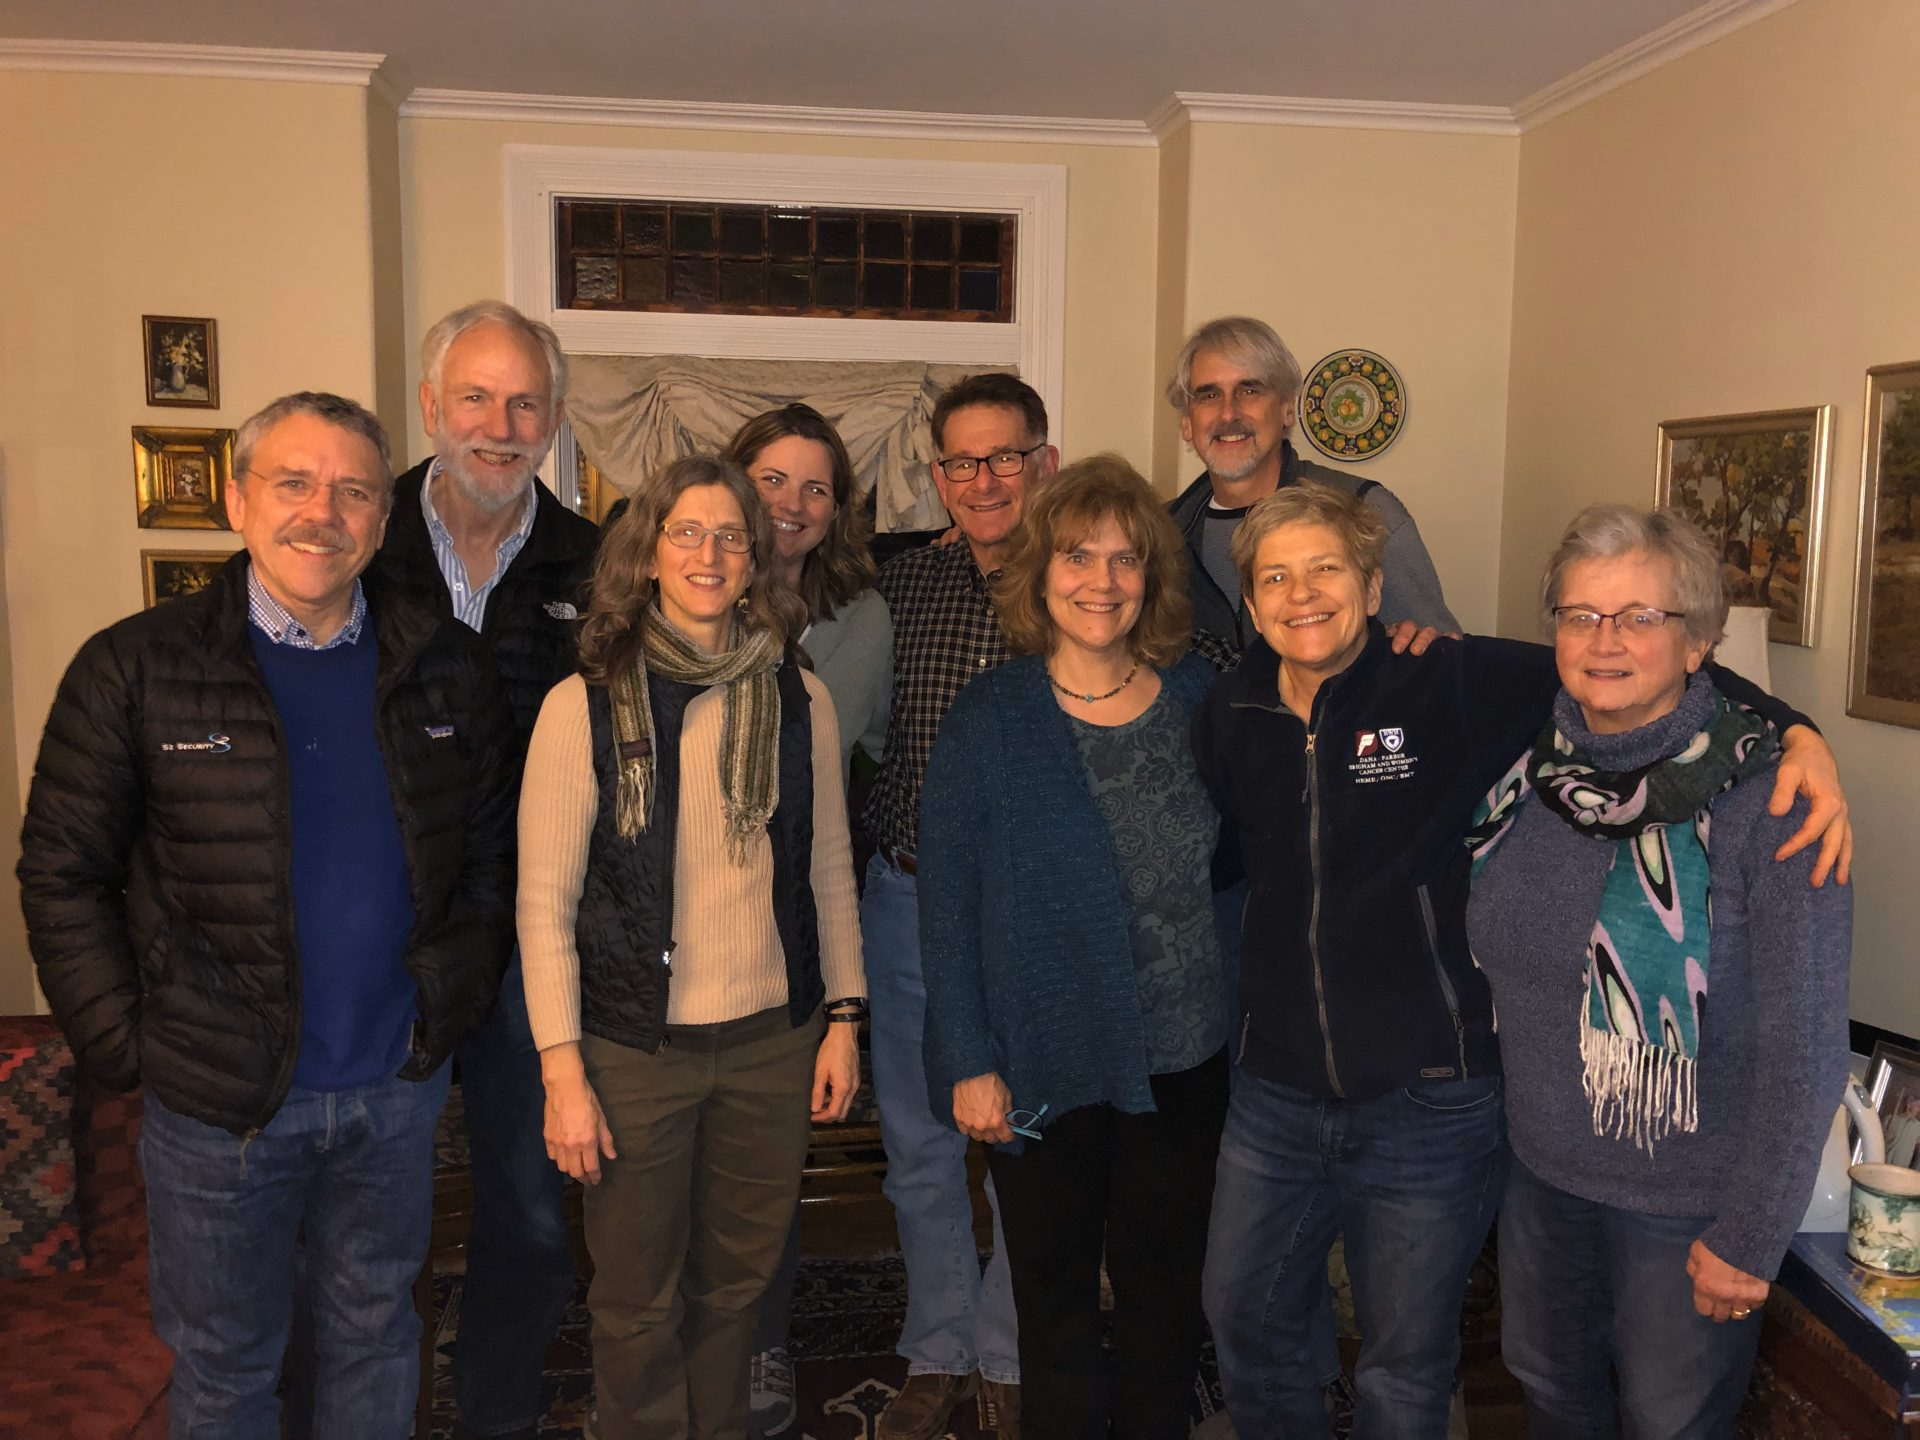 Photo of Lay Ministers: Jay Flynn, Jud Leonard, Ellen Metzger, Erin O'Donnell, Cris Goldsmith, Ann Woodbury, Gordon Moriarty, Margaret Costello, Cindy Orrell